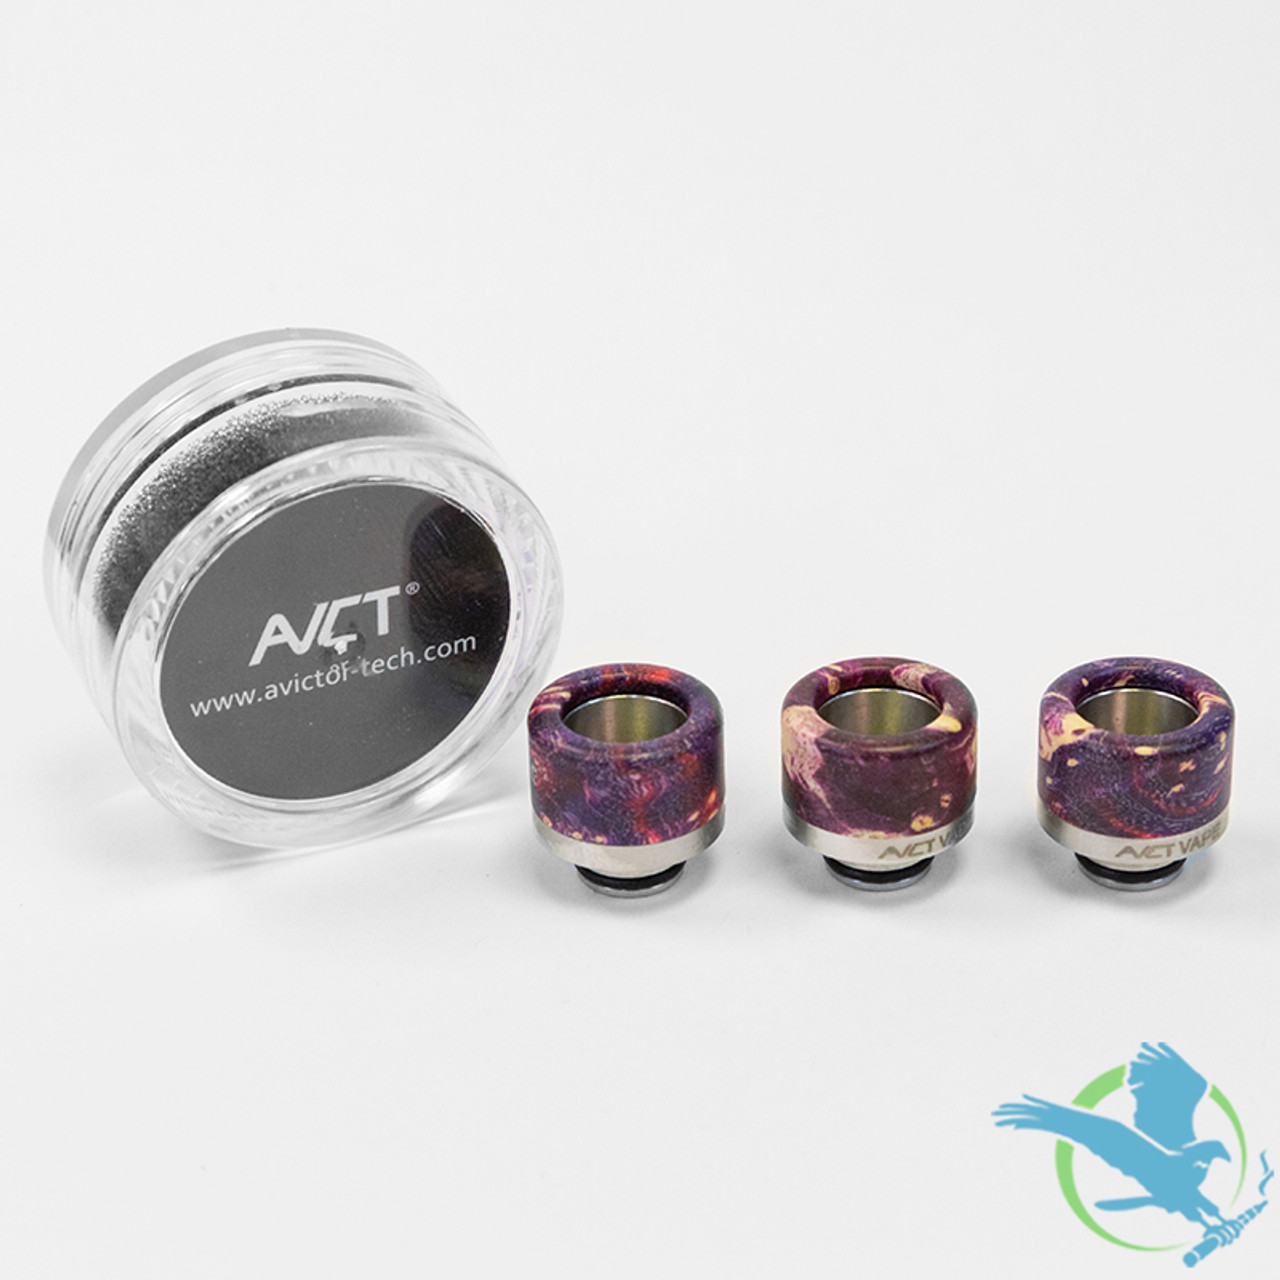 AVCT High-End Stabilized Wood And Stainless Steel Wide Bore 510 Drip Tips -  Assorted Colors - Pack Of 10 [AV-D088] (MSRP $7 00 Each)